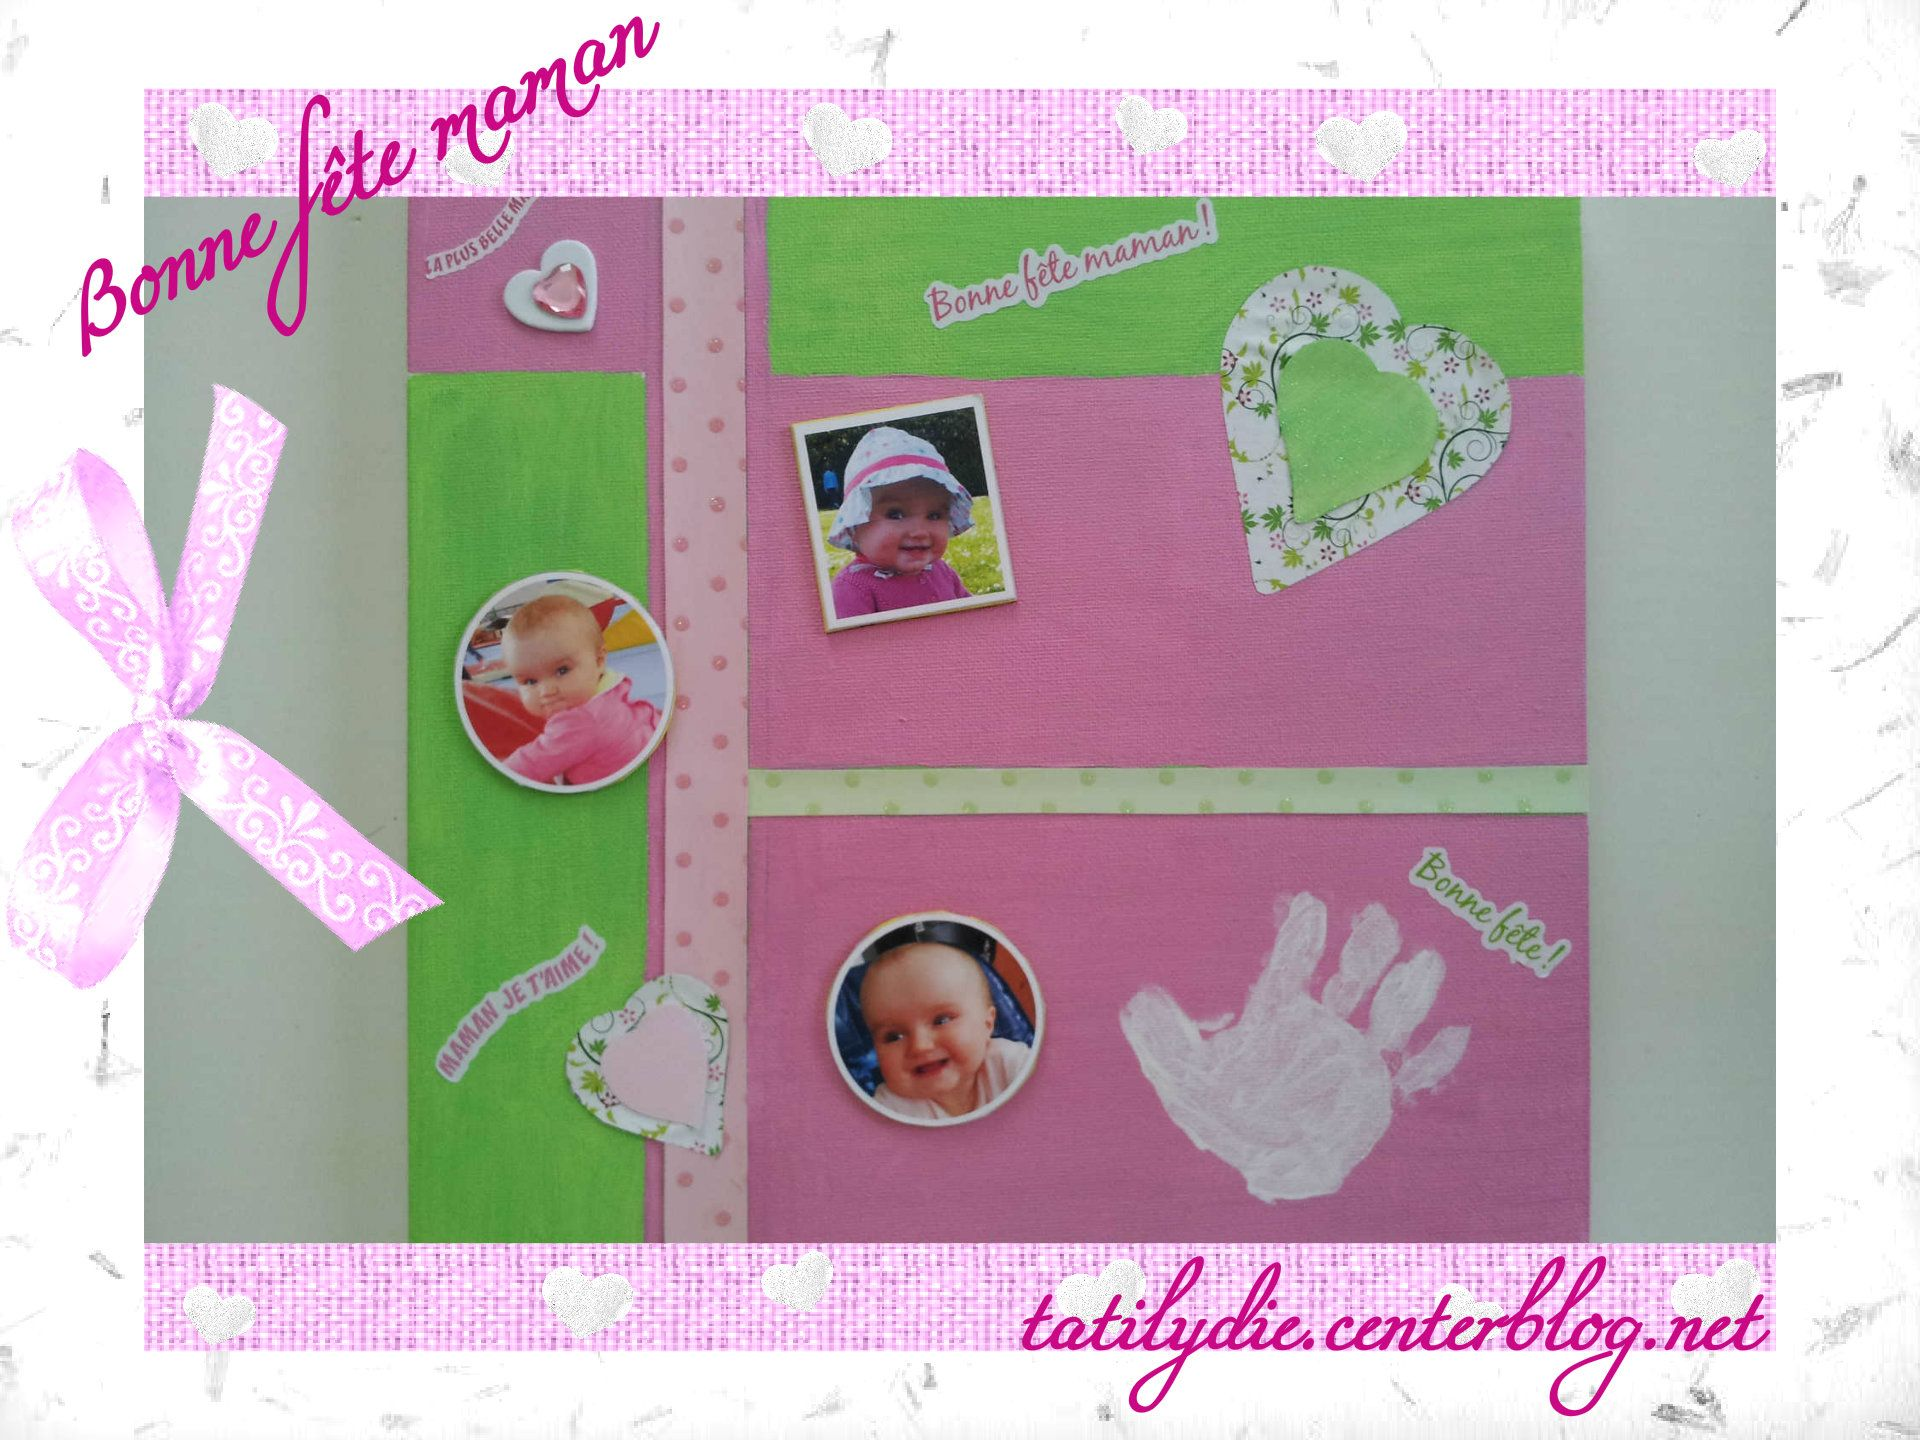 Aimant Pour Tableau Tableau Aimant Pour Photos Best Lot De Magnets Ou Aimant